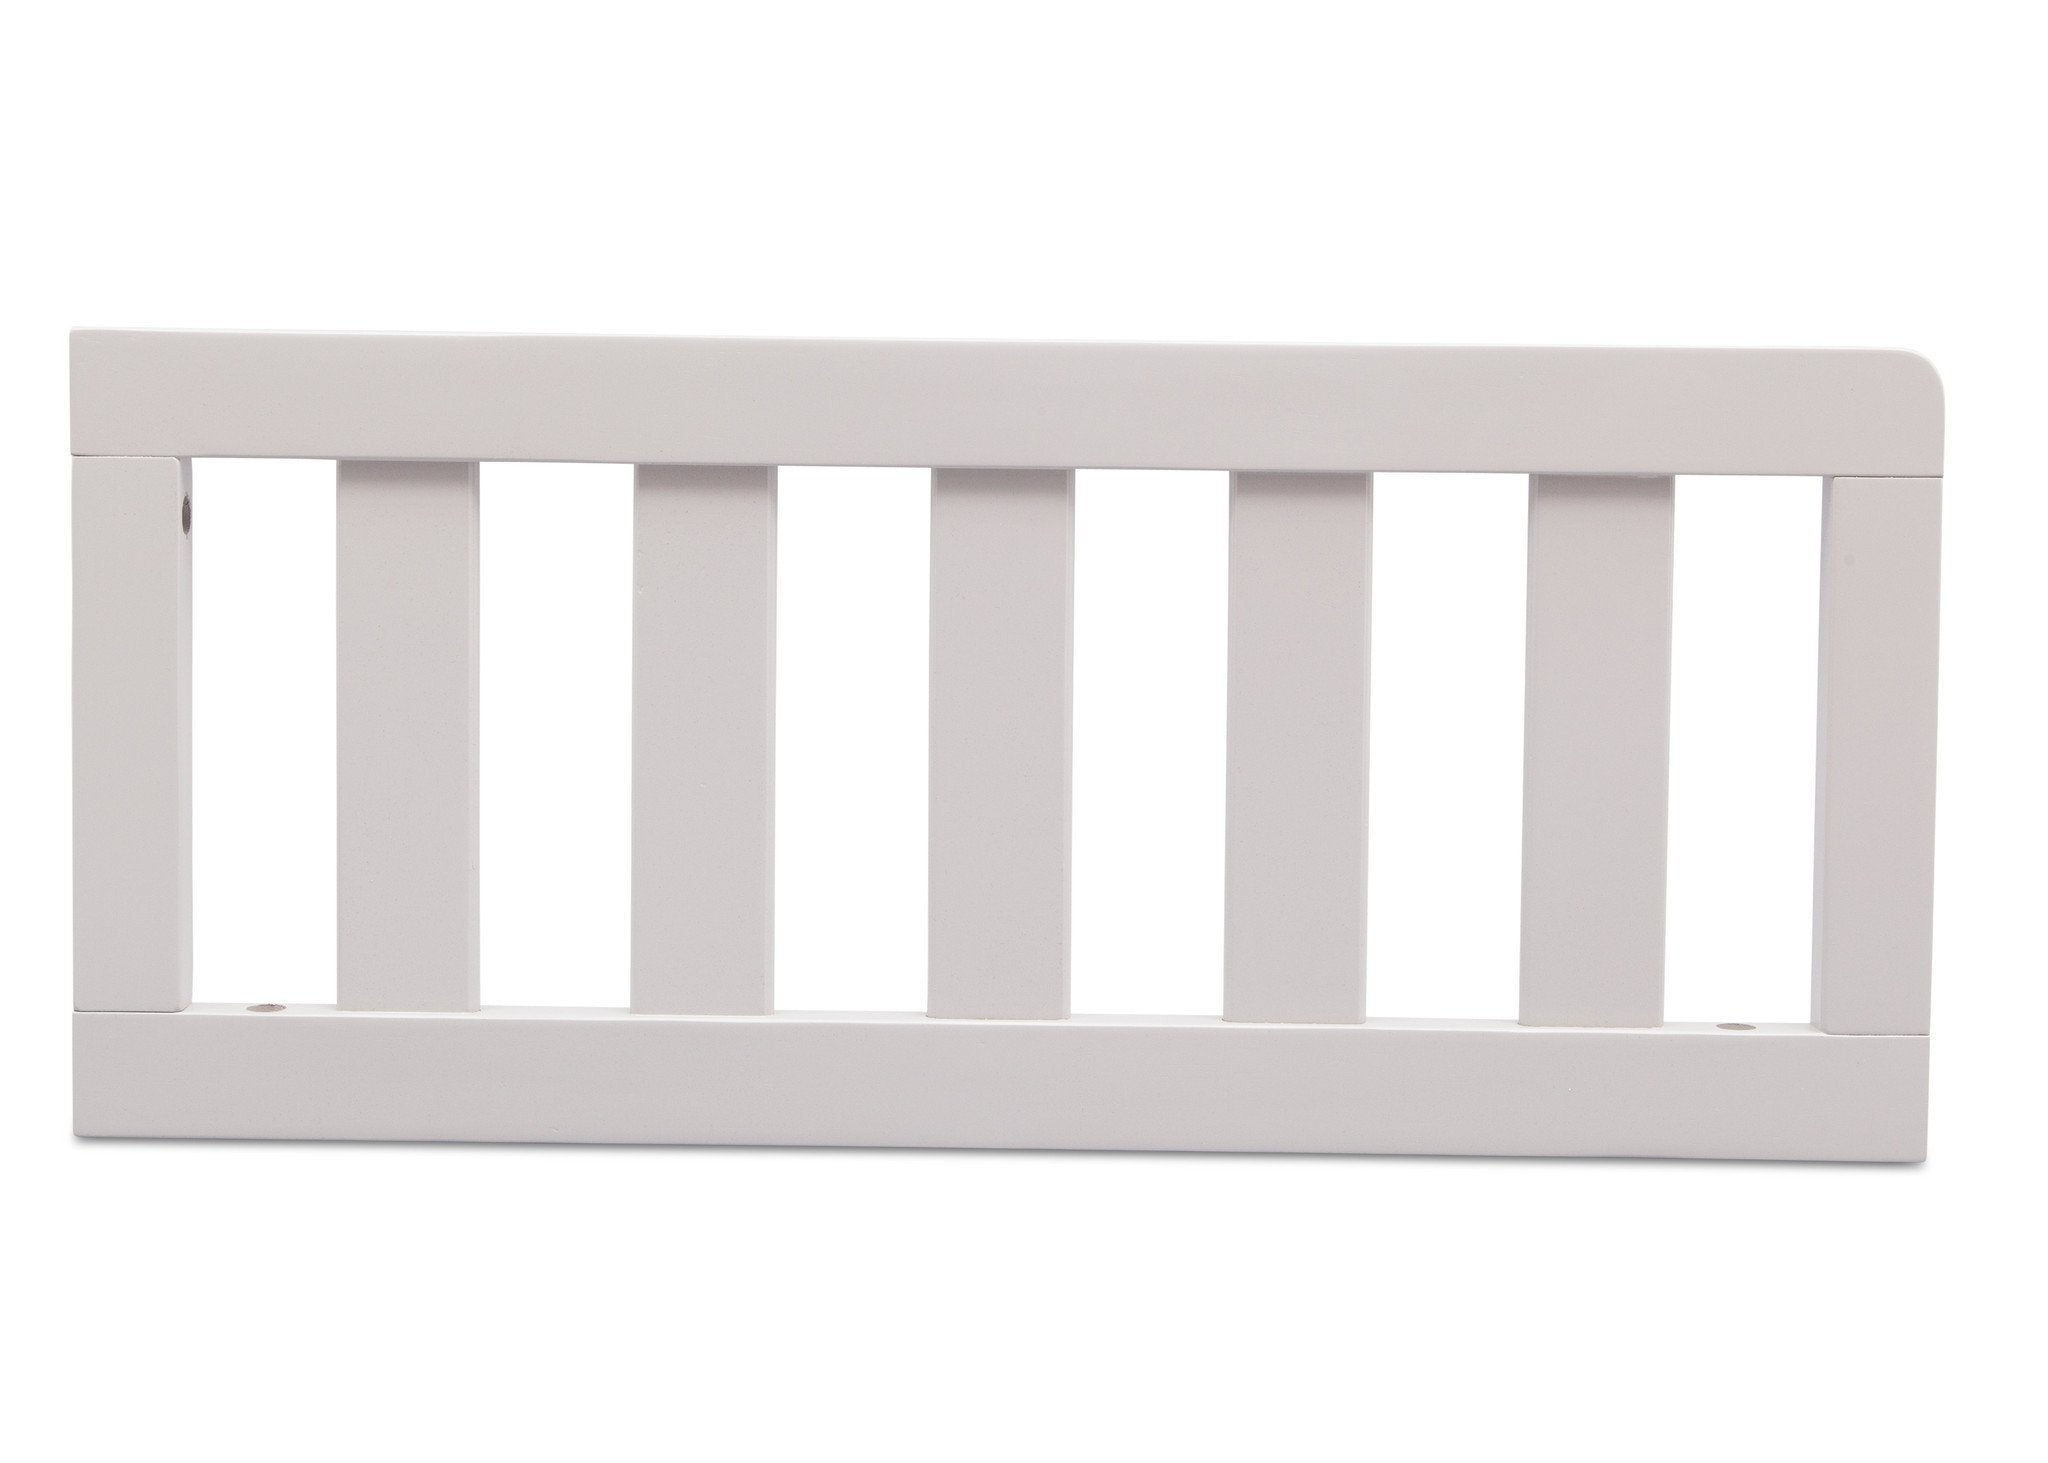 Bianca White (130) Ebony (0011) Guardrail Kit (0094) for Skylar 4-in-1 Convertible Crib